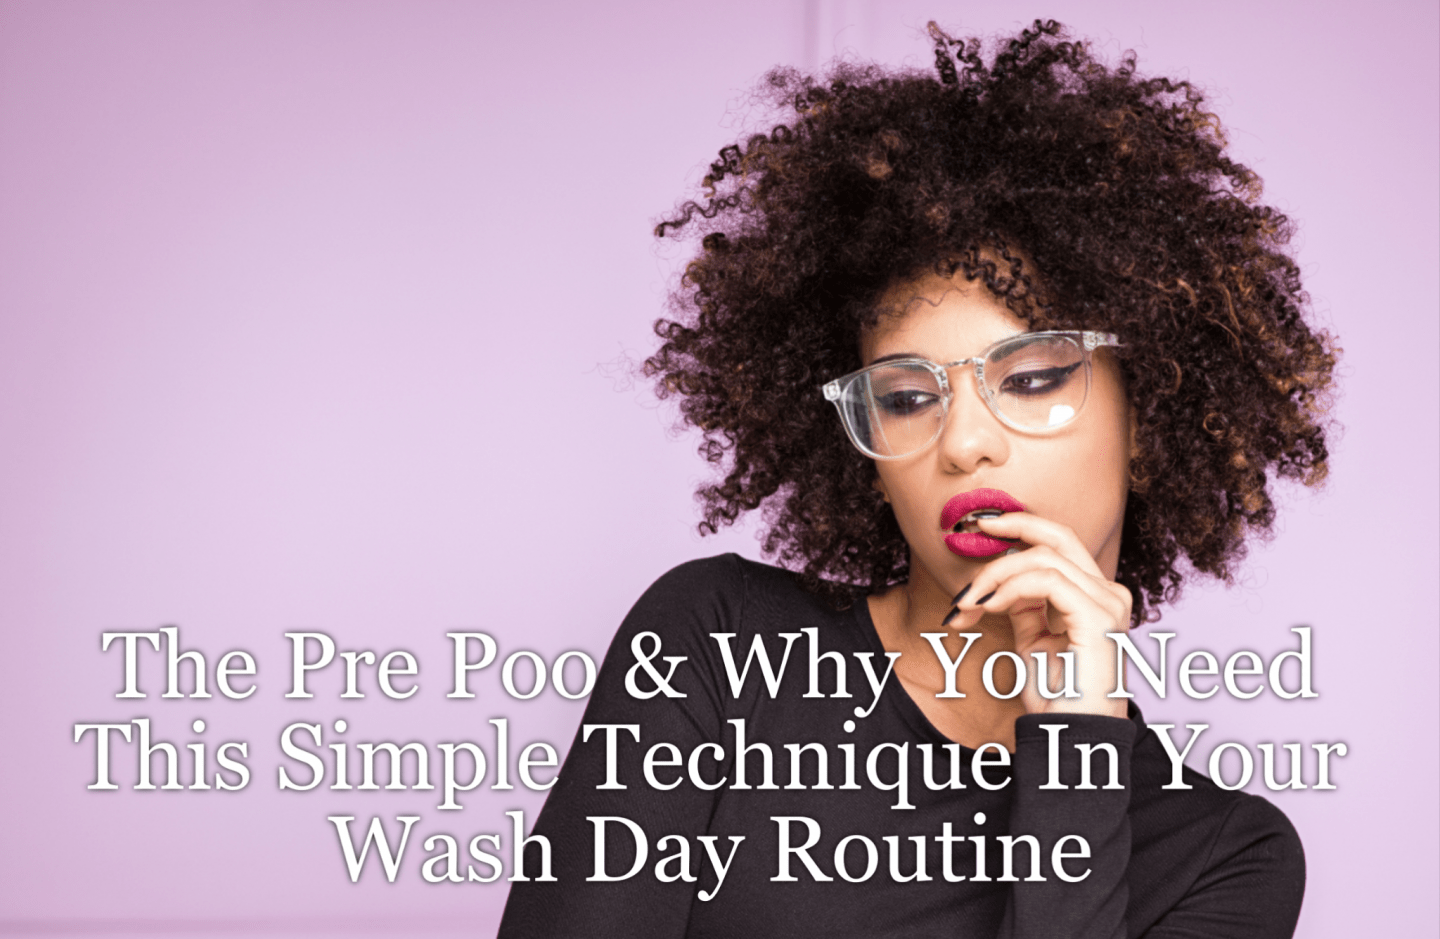 One that is extremely important and often overlooked is the pre poo or the process to soften the blow ofdetangling and washinghair prior to the act.